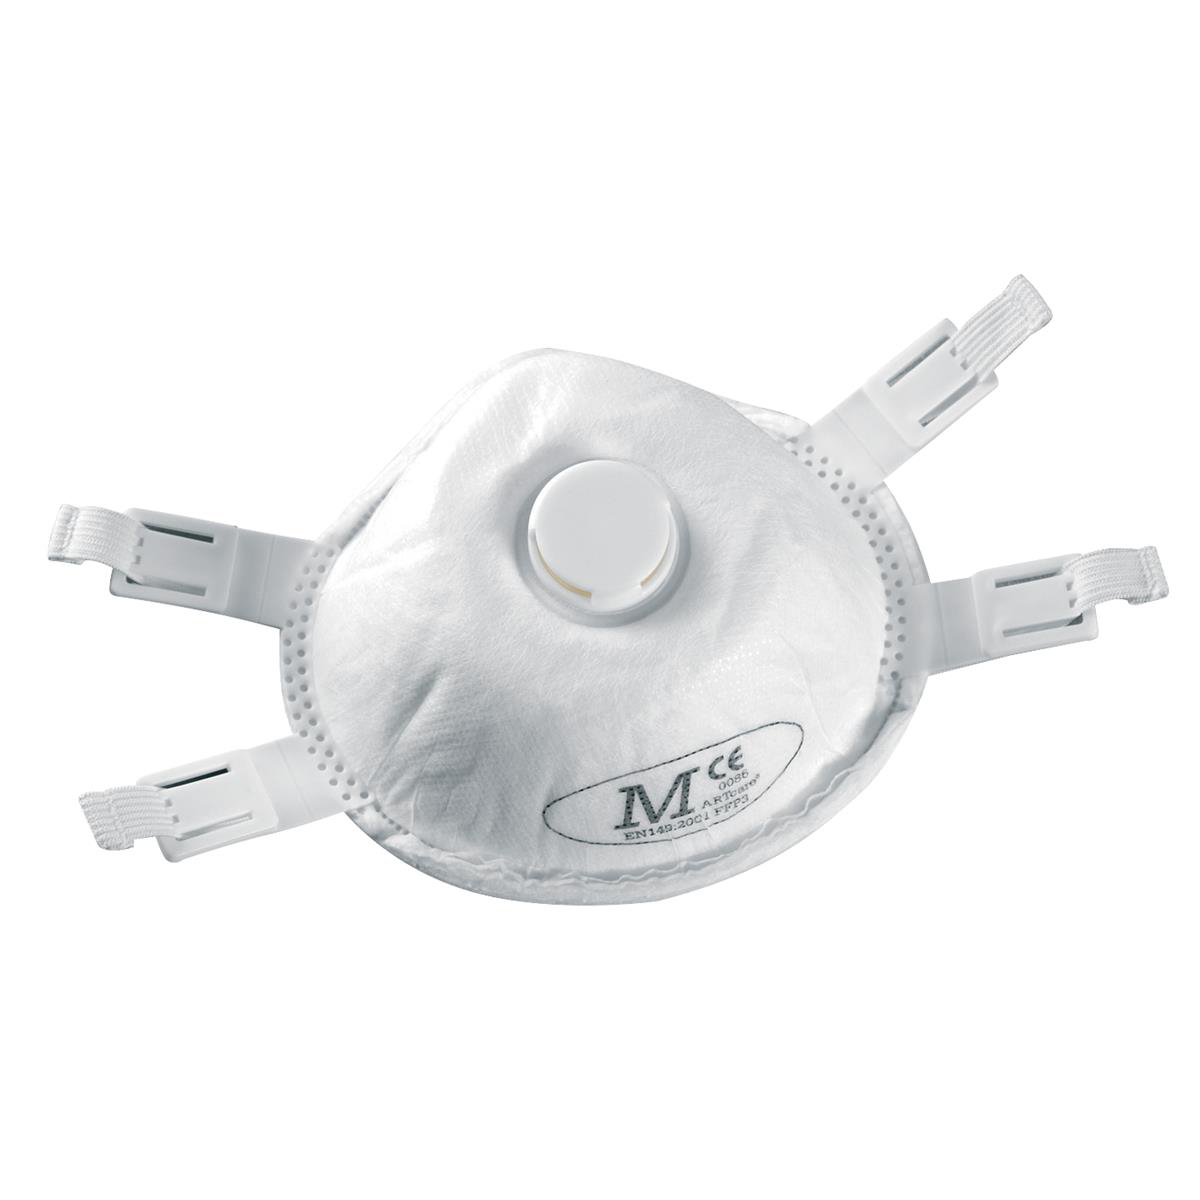 Masks or accessories JSP Disposable Mask FFP3 Moulded Valved EN149 Standard Ref BEH130-001-000 Pack 5